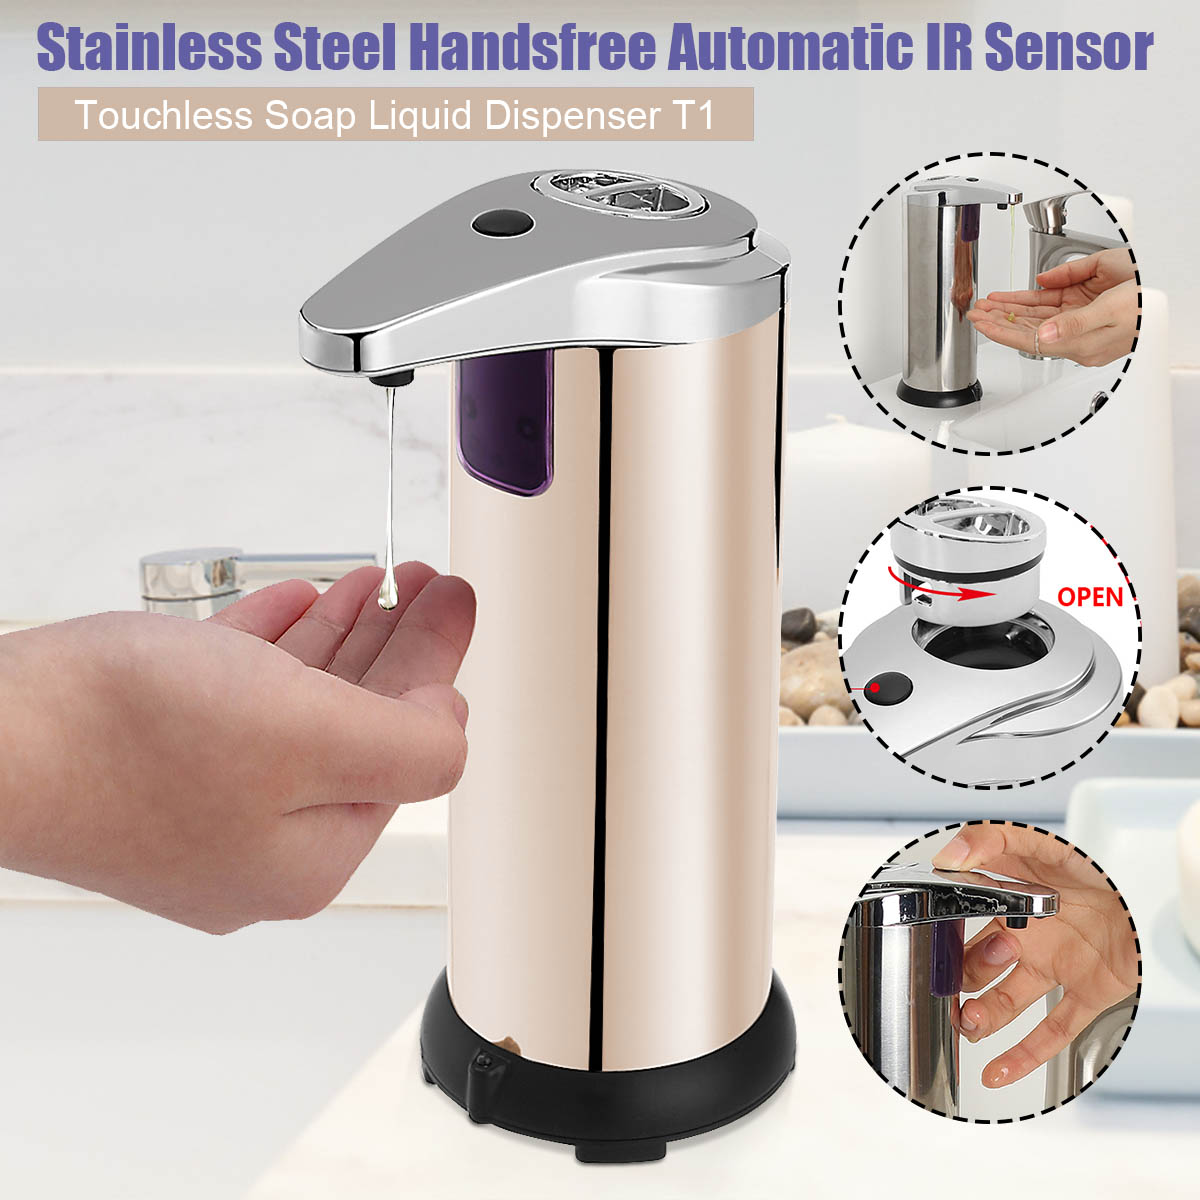 Xueqin 280ml Stainless Steel Sensor Soap Dispenser Automatic Liquid Soap Dispenser Pump Shower Kitchen Soap Bottle For Bathroom